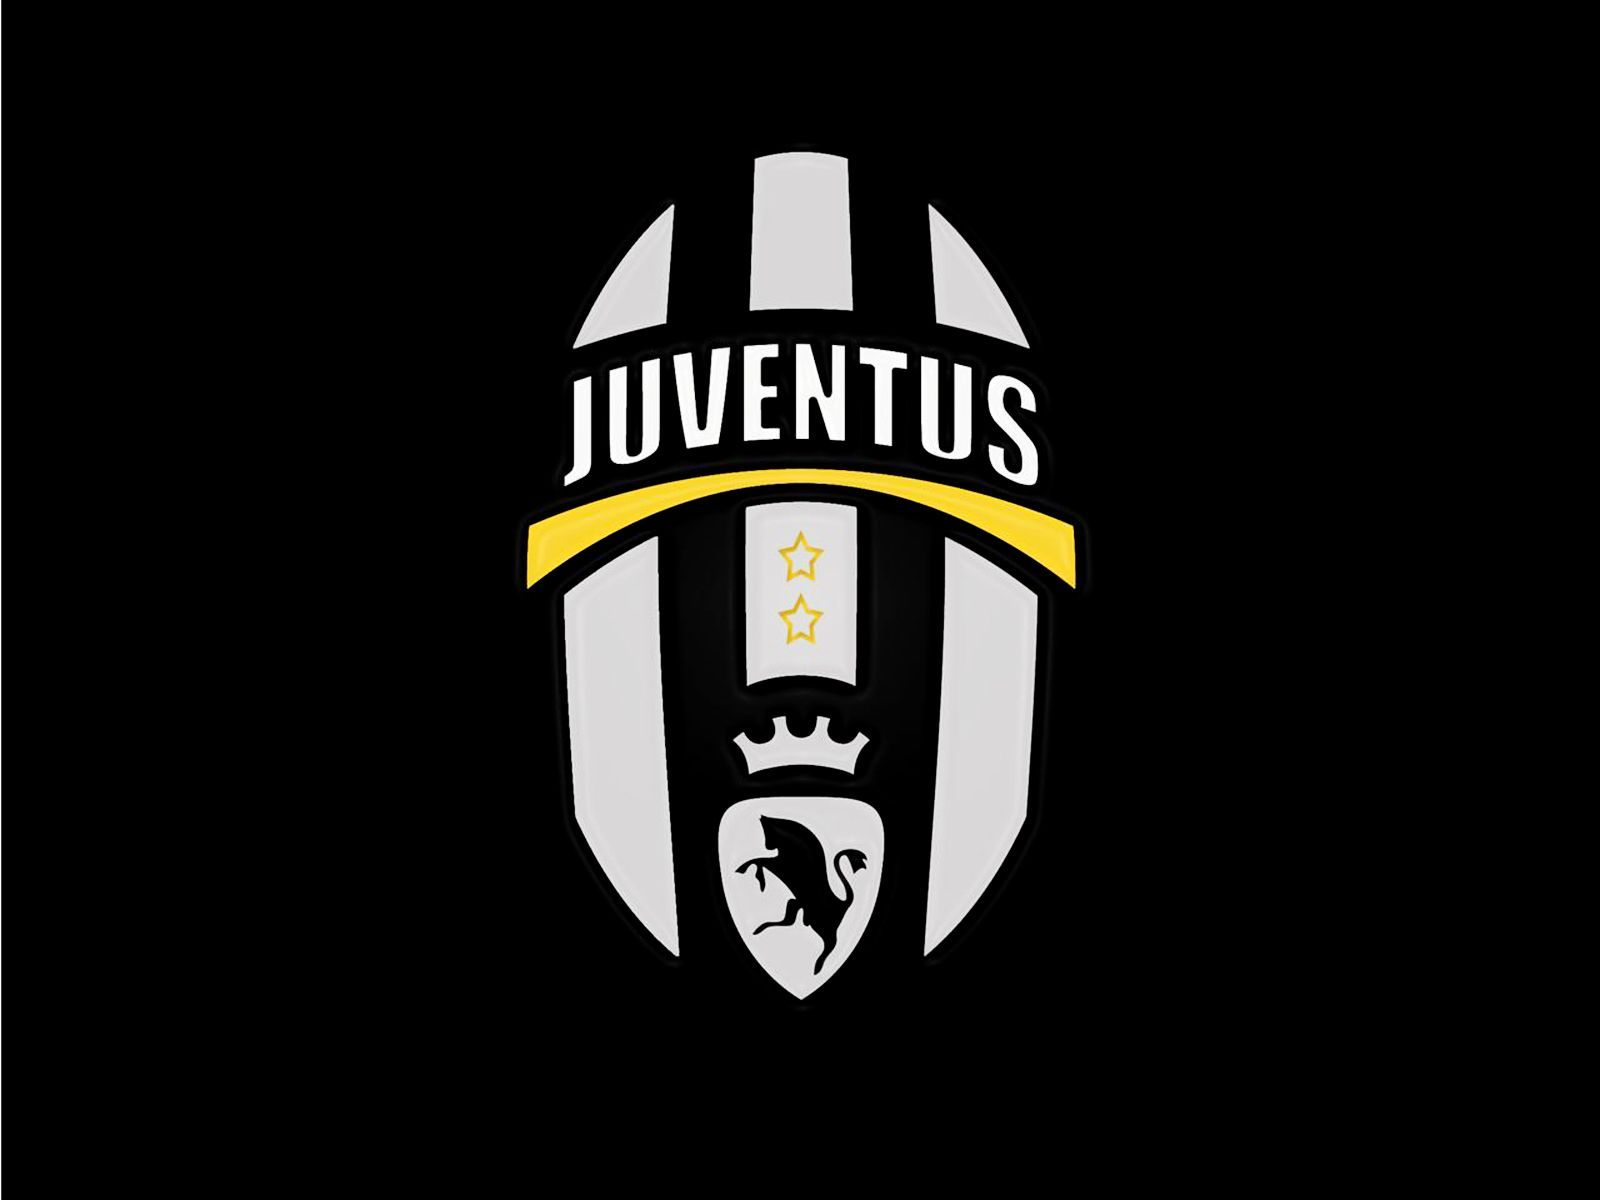 mobile phone wallpaper inspired by juventus fc rd kit wallpaper juventus wallpapers